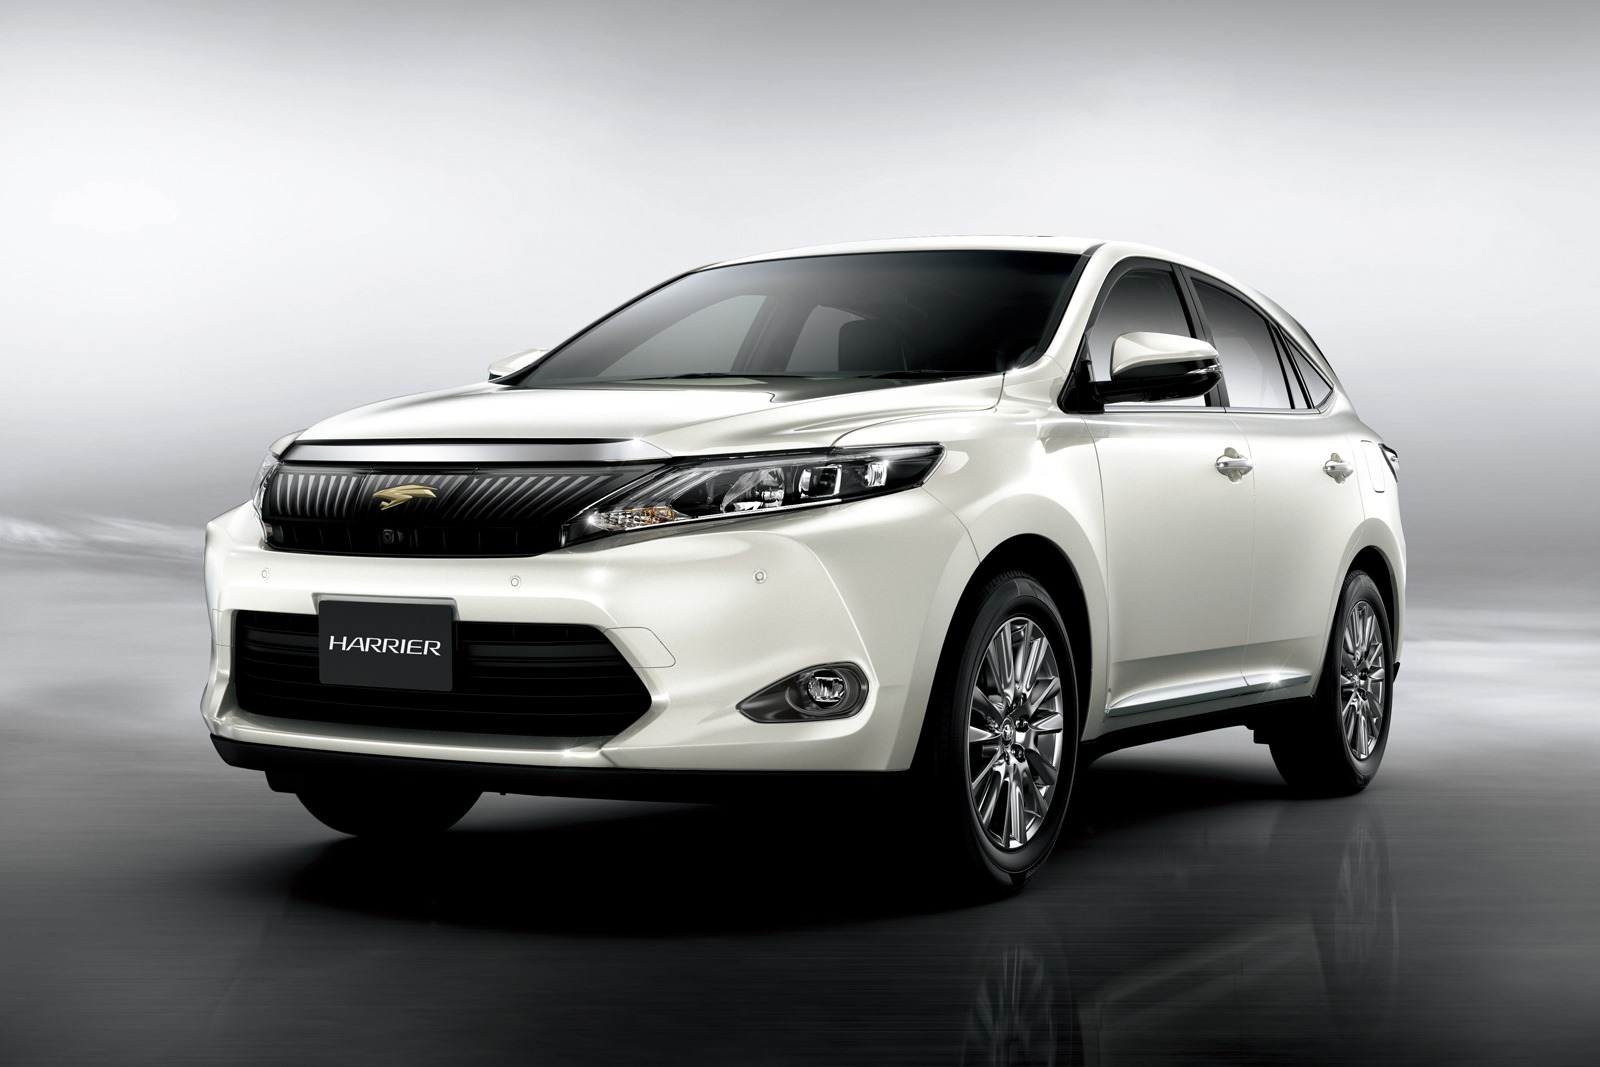 New Toyota Harrier Suv Photo Gallery Car Gallery Suv Crossovers Autocar India